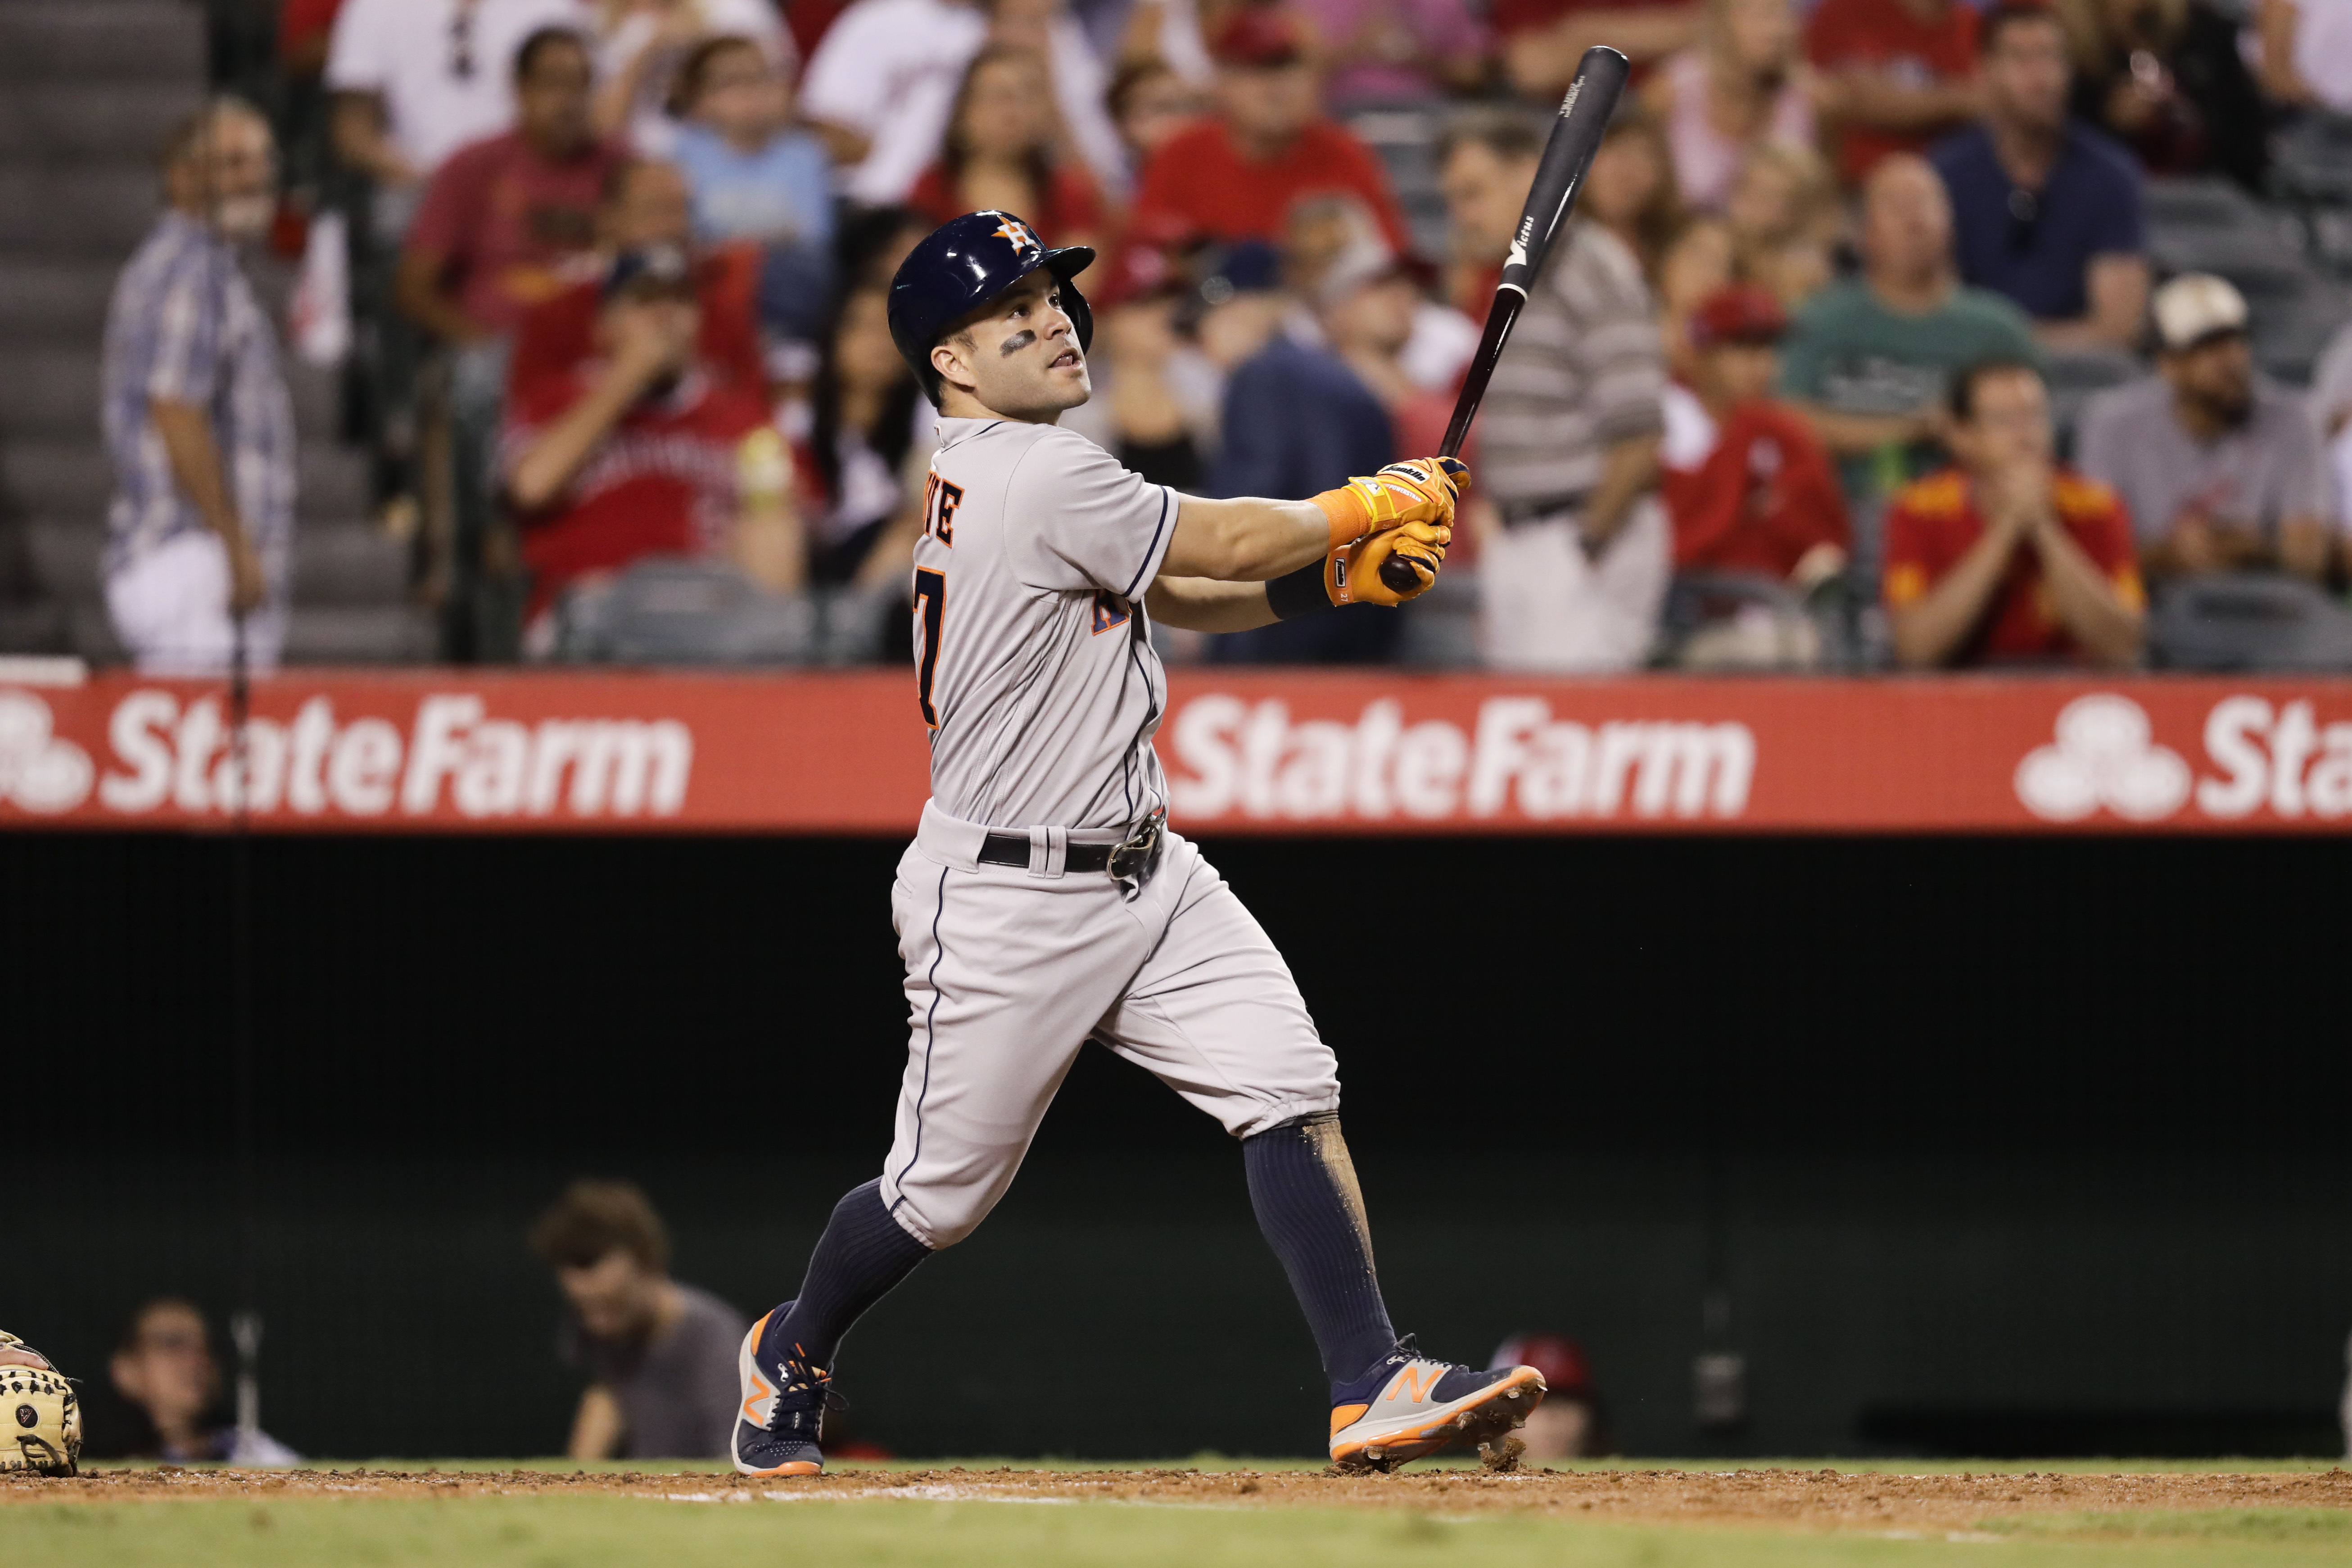 FILE - In this Oct. 1, 2016, file photo, Houston Astros' Jose Altuve watches his fly ball during the third inning of a baseball game against the Los Angeles Angels, Saturday, Oct. 1, 2016, in Anaheim, Calif. Altuve hit .338 for the season to win his secon